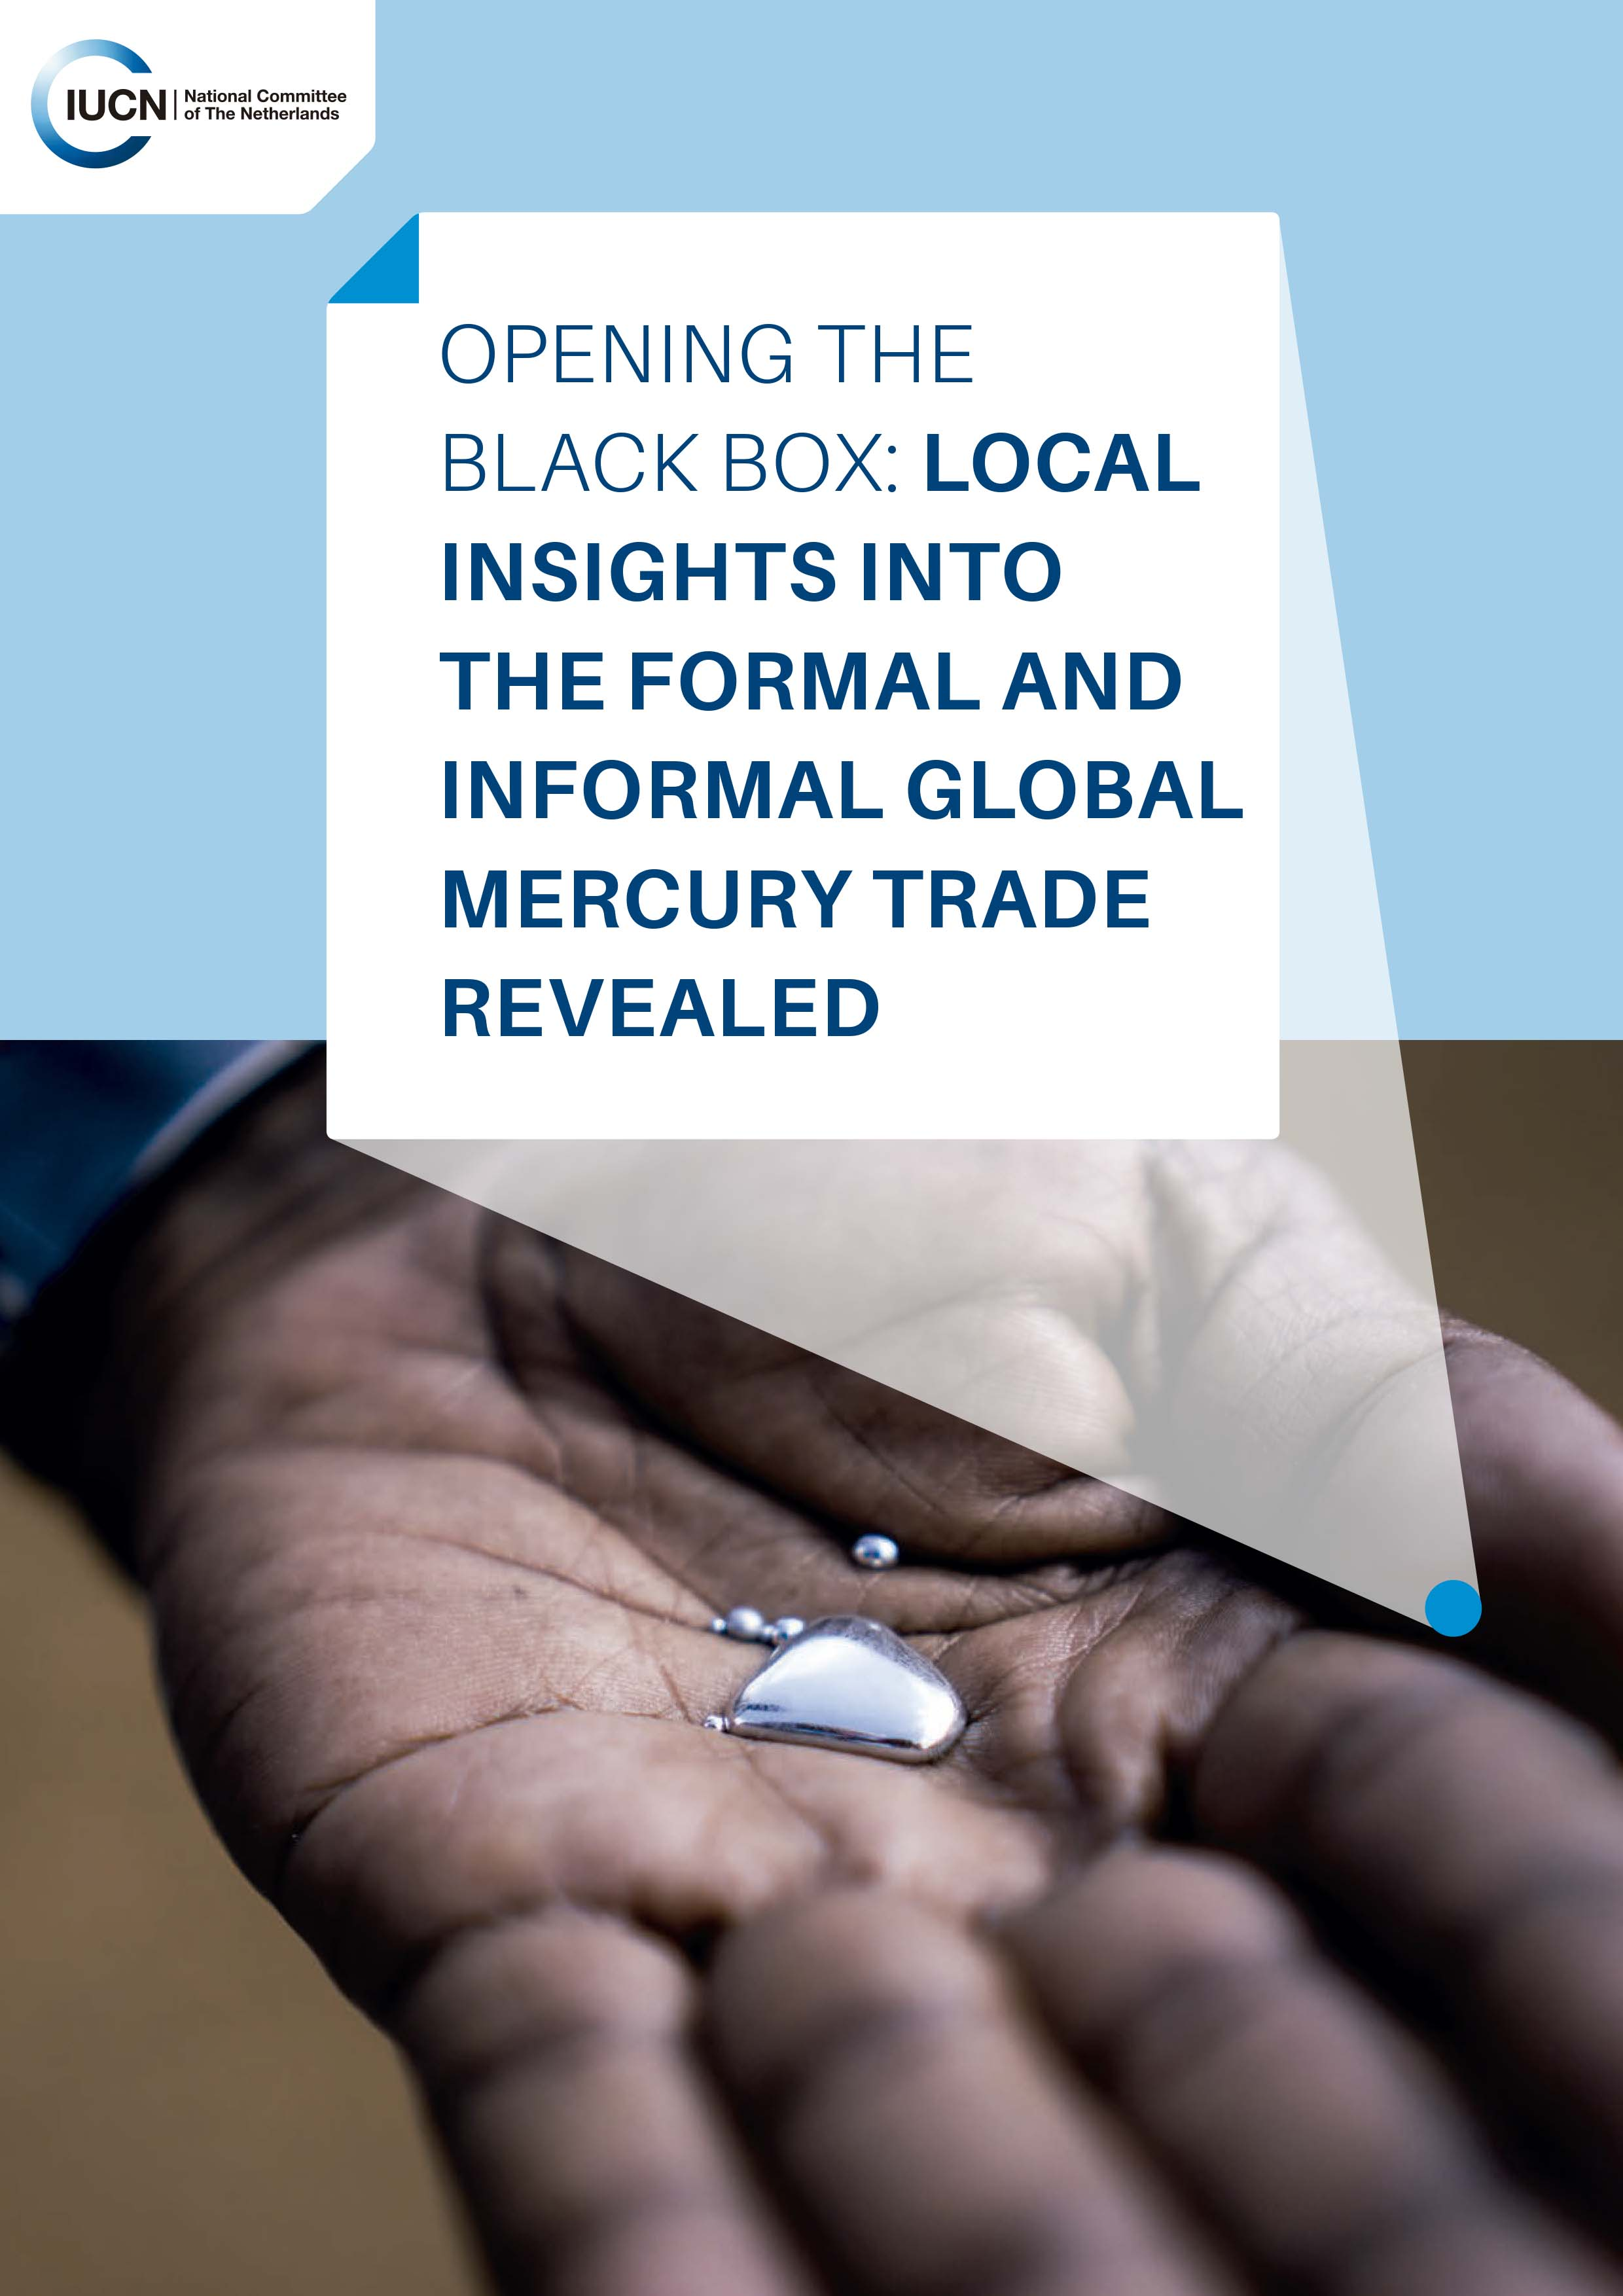 Opening the black box: Local insights into formal and informal global mercury trade revealed